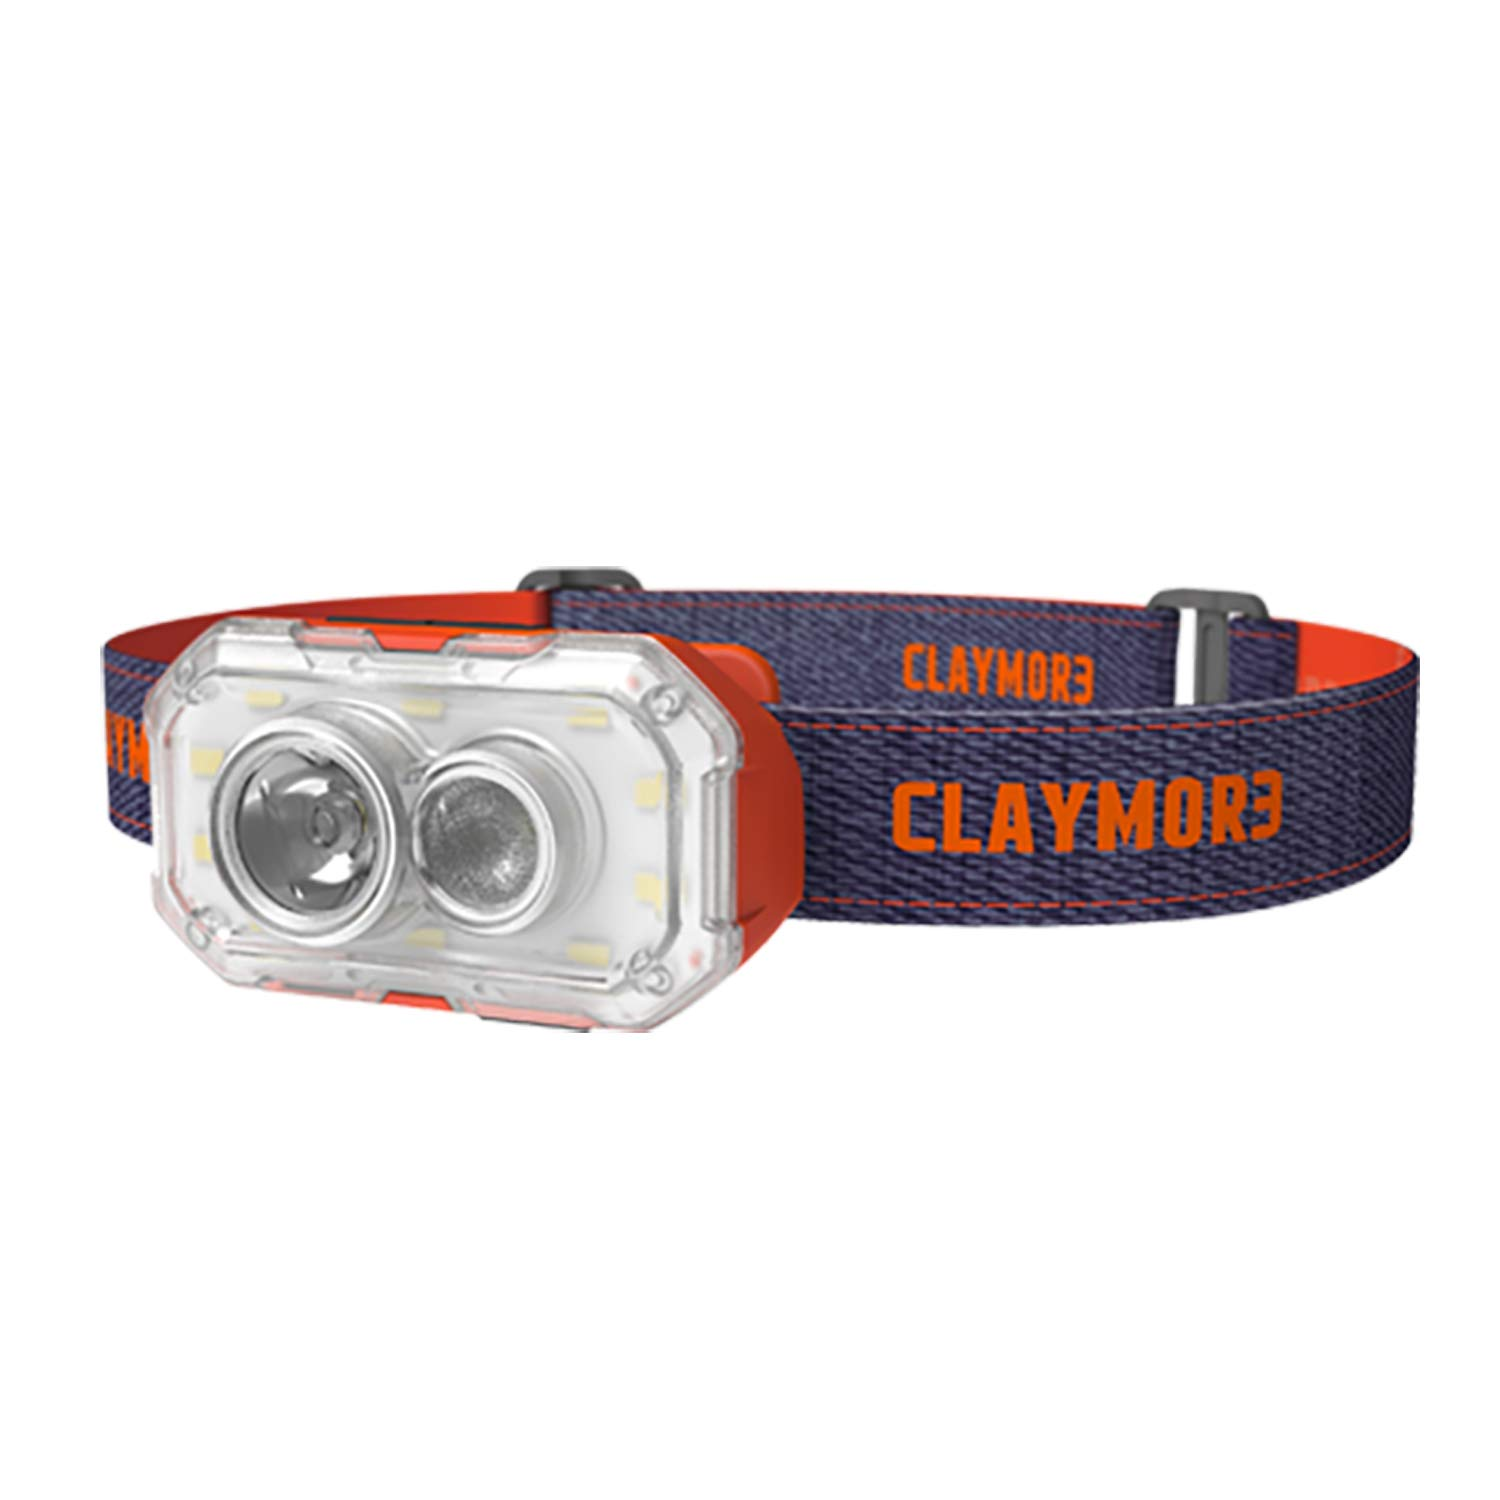 Claymore Heady+ Headlamp and Lantern, 600 Lumens, 3,5000mAh, USB Rechargeable, 4 Lighting Modes, 3 Colors, Portable LED Flashlight for Camping Running Hiking and More [Red]